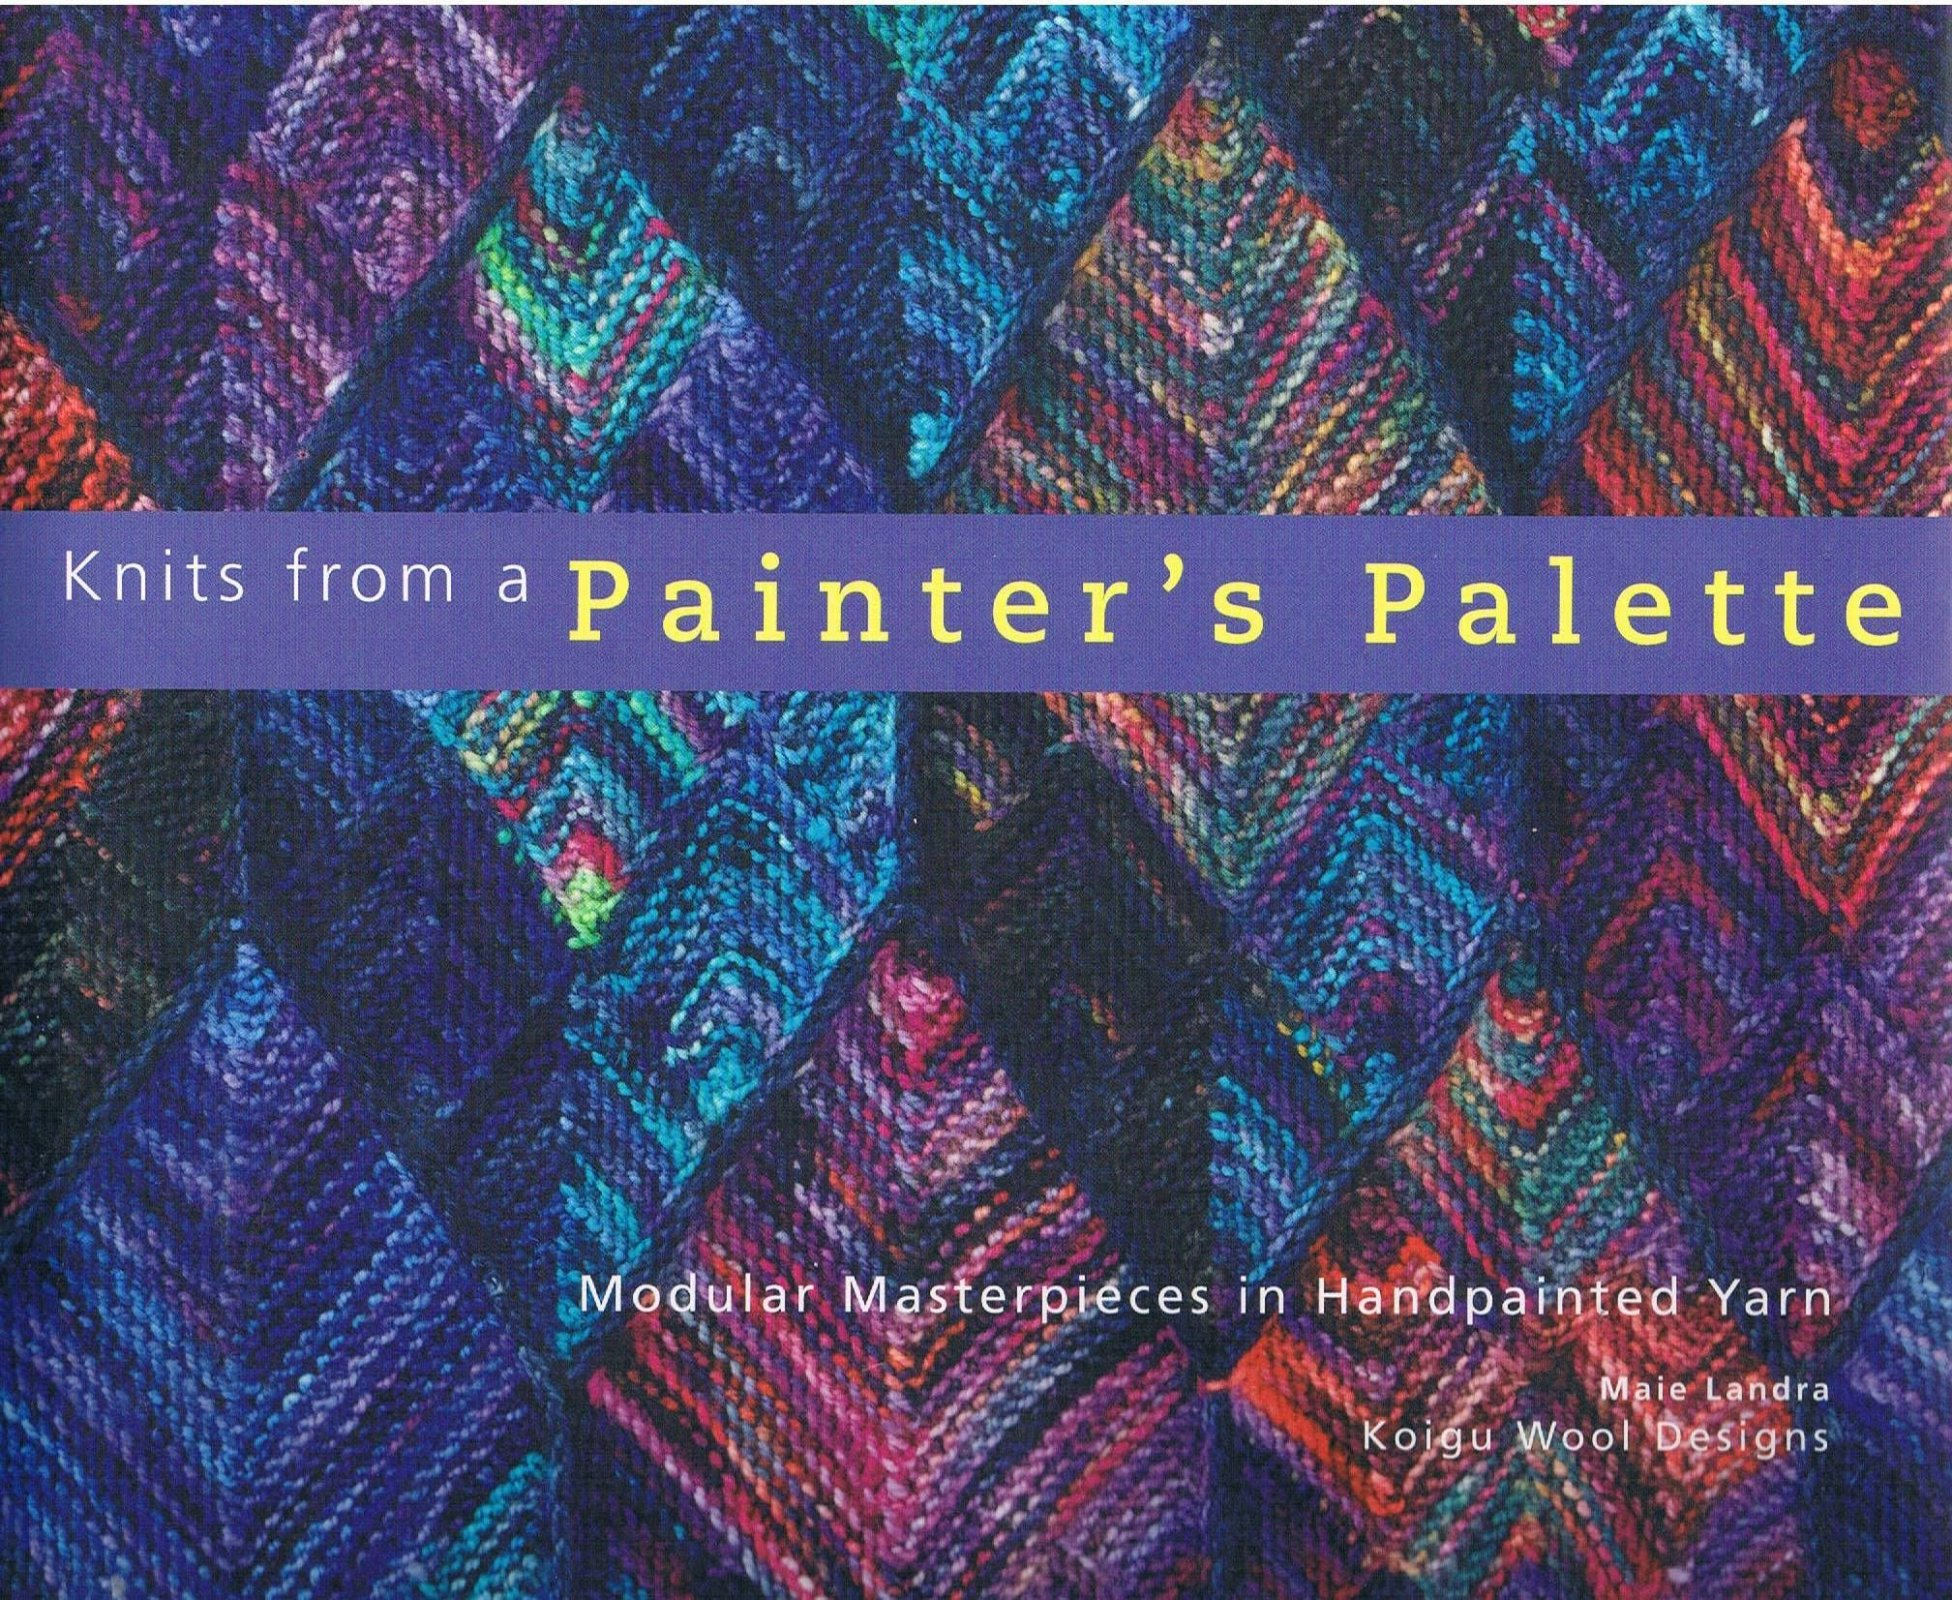 Knits from a Painter's Palette: Modular Masterpieces in Handpainted Yarns  (hardcover)